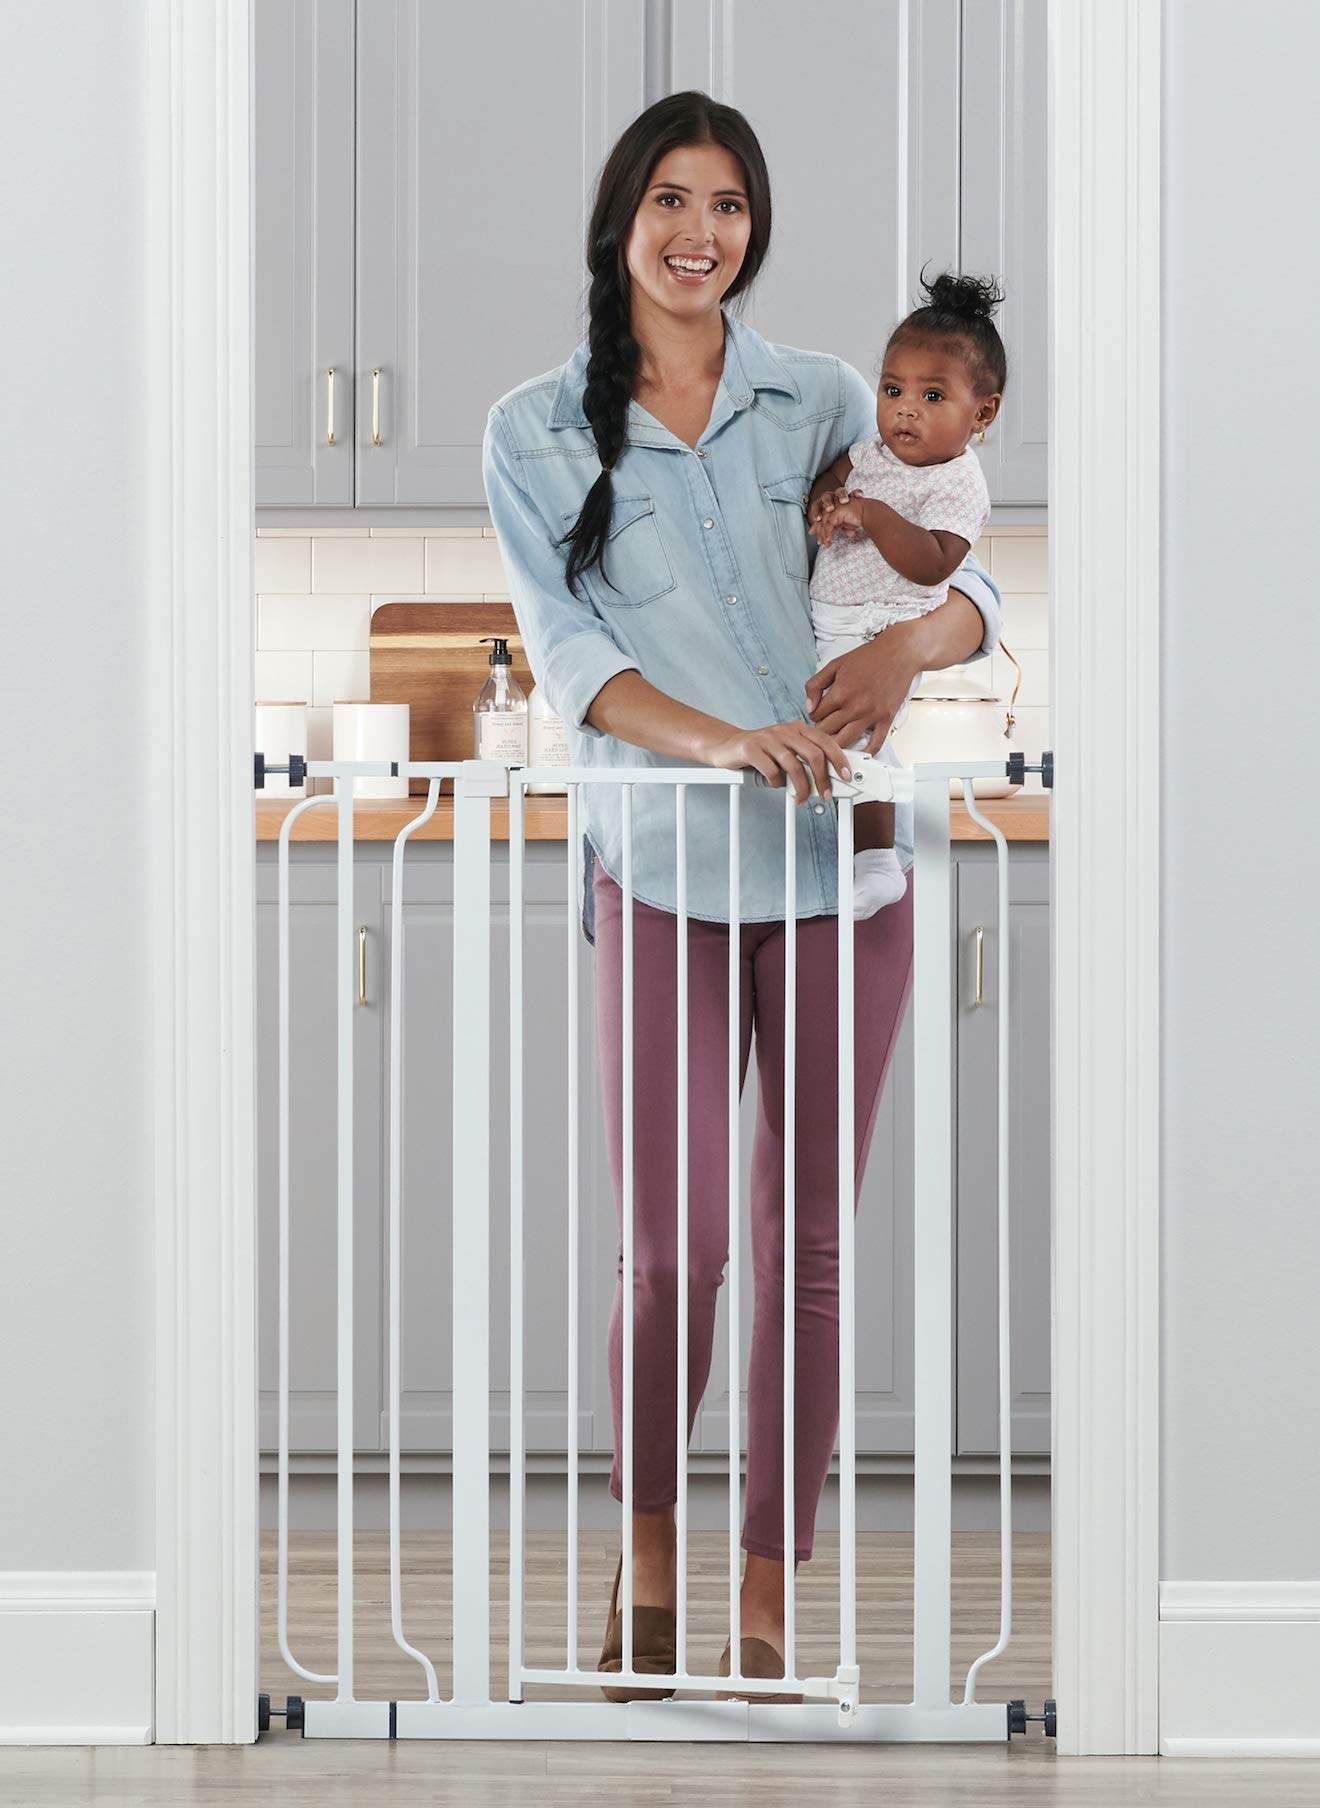 Regalo Easy Step Extra Tall Walk Thru Baby Gate, Includes 4-Inch Extension Kit, 4 Pack of Pressure Mount Kit and 4 Pack Wall Cups and Mounting Kit by Regalo